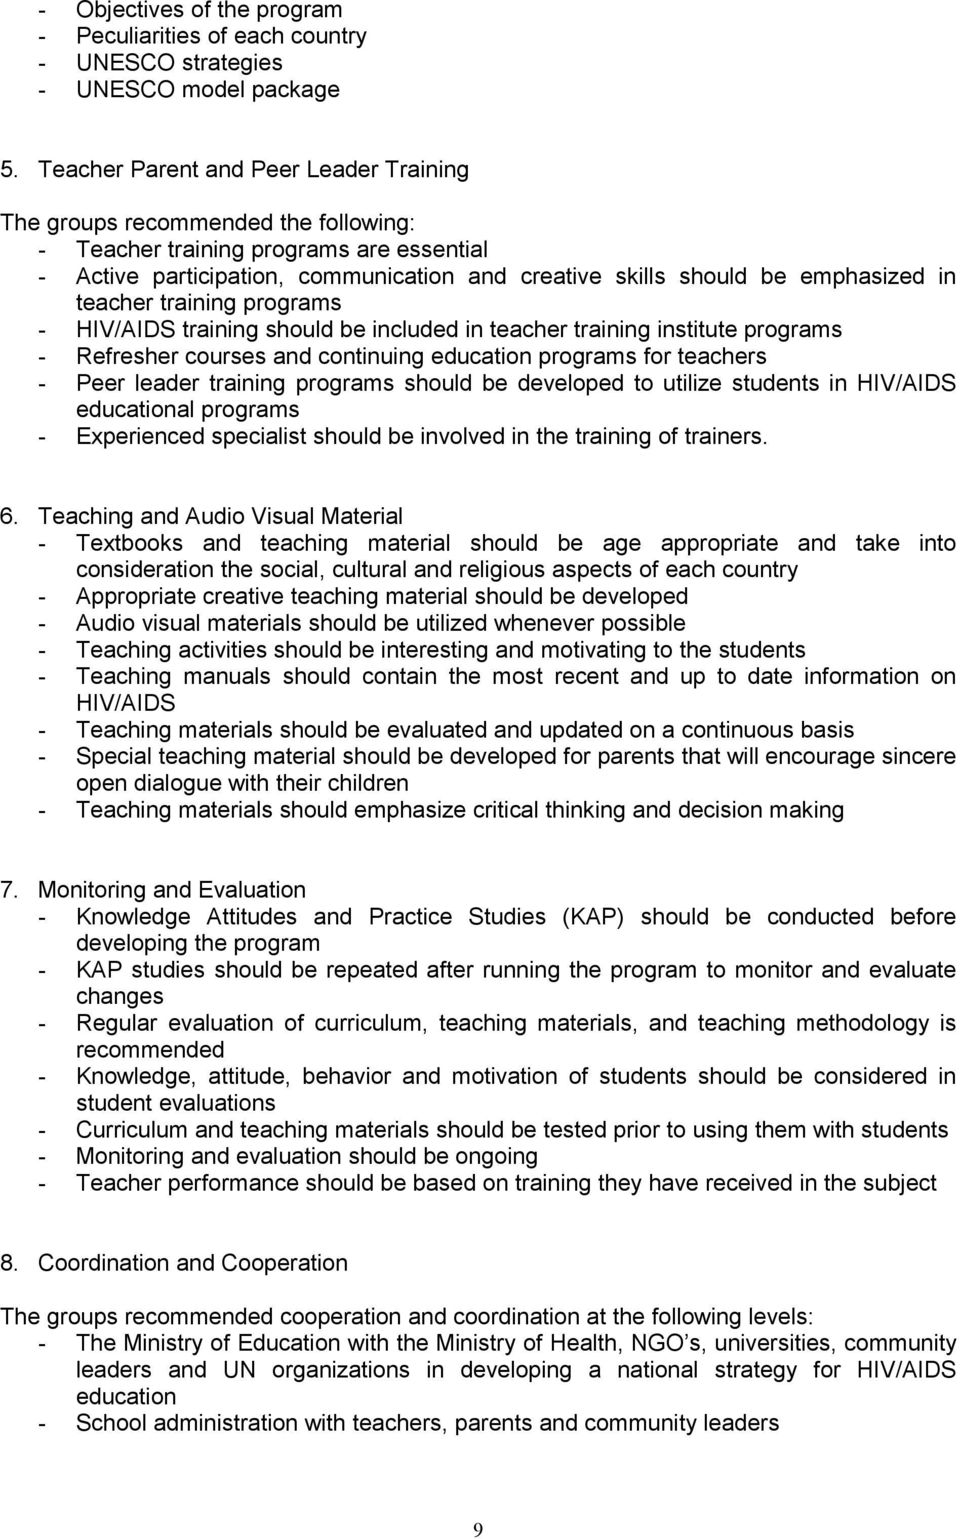 in teacher training programs - HIV/AIDS training should be included in teacher training institute programs - Refresher courses and continuing education programs for teachers - Peer leader training